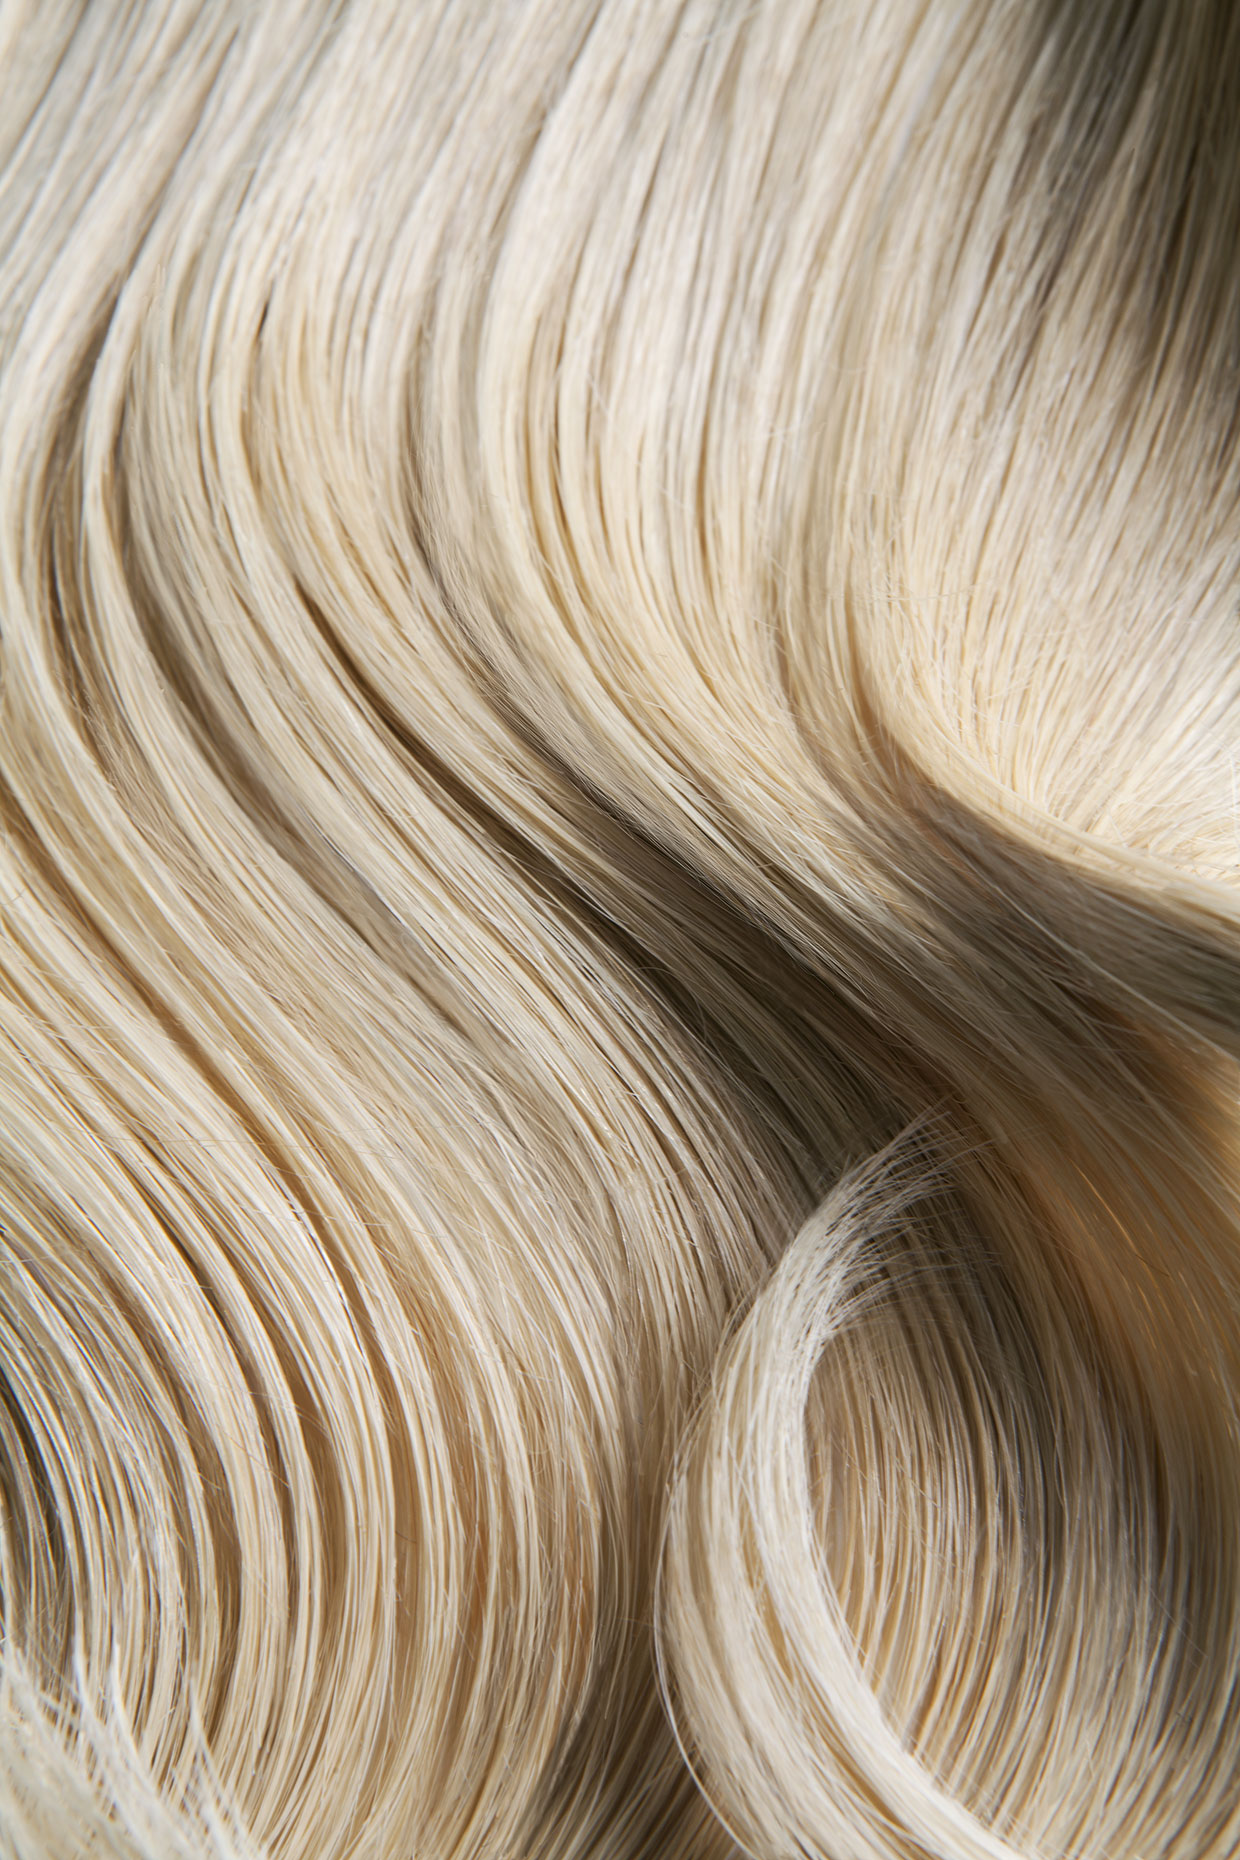 Close up shot of wavy blond hair.